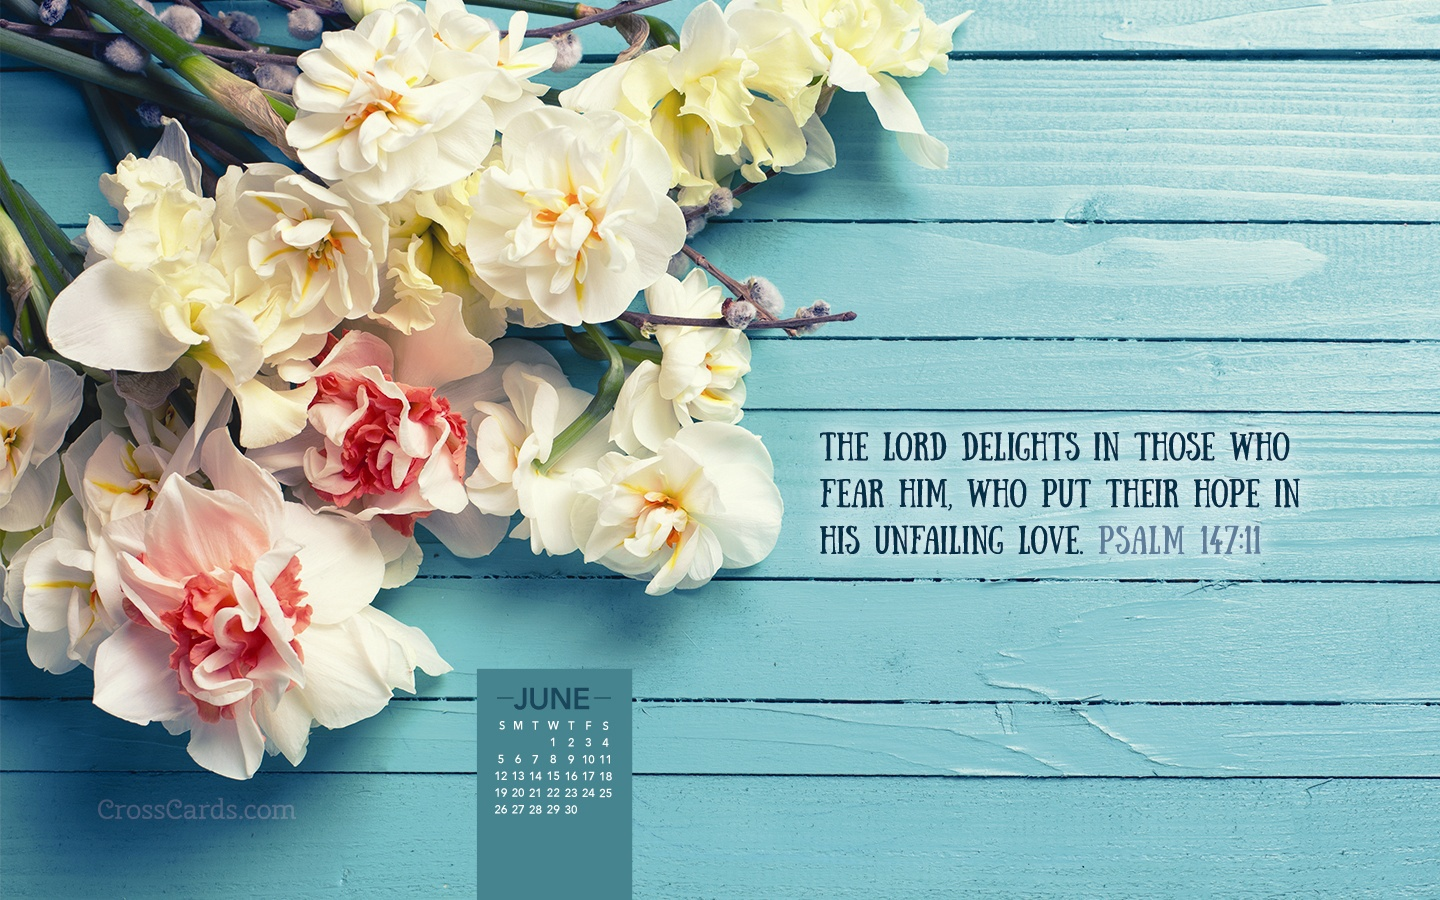 June 2016 Psalm 147:11 Desktop Calendar Free June Wallpaper